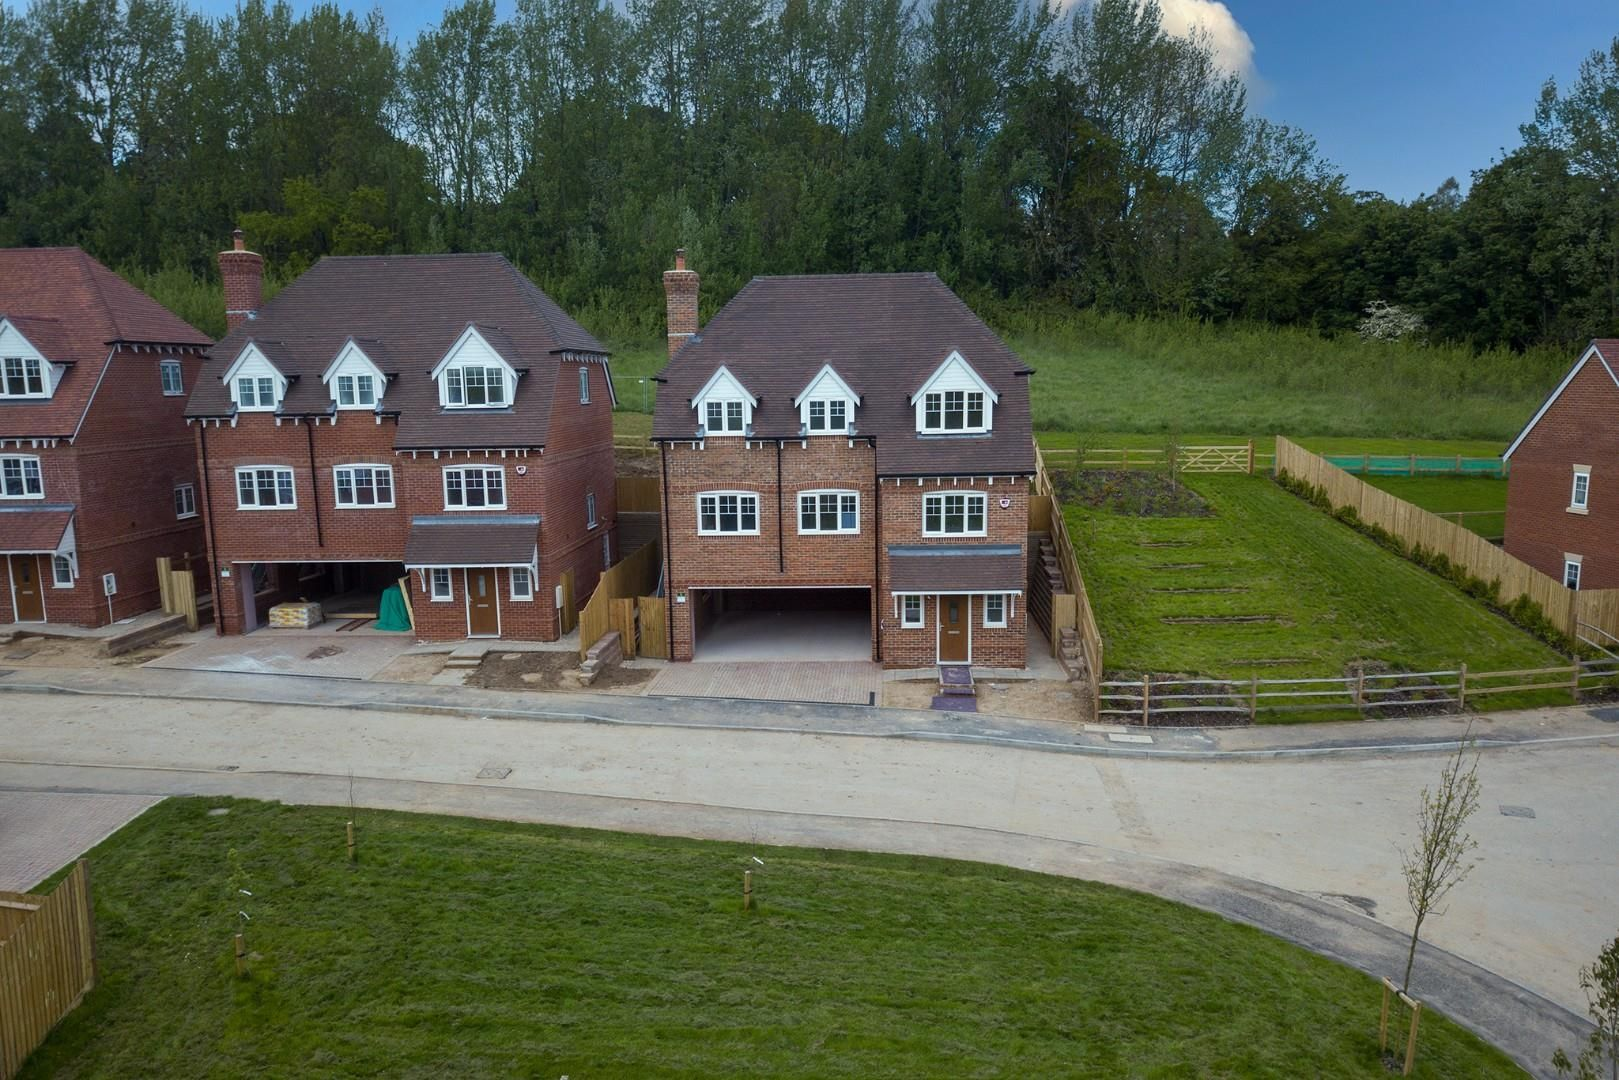 4 bed house for sale in Woolhampton 1